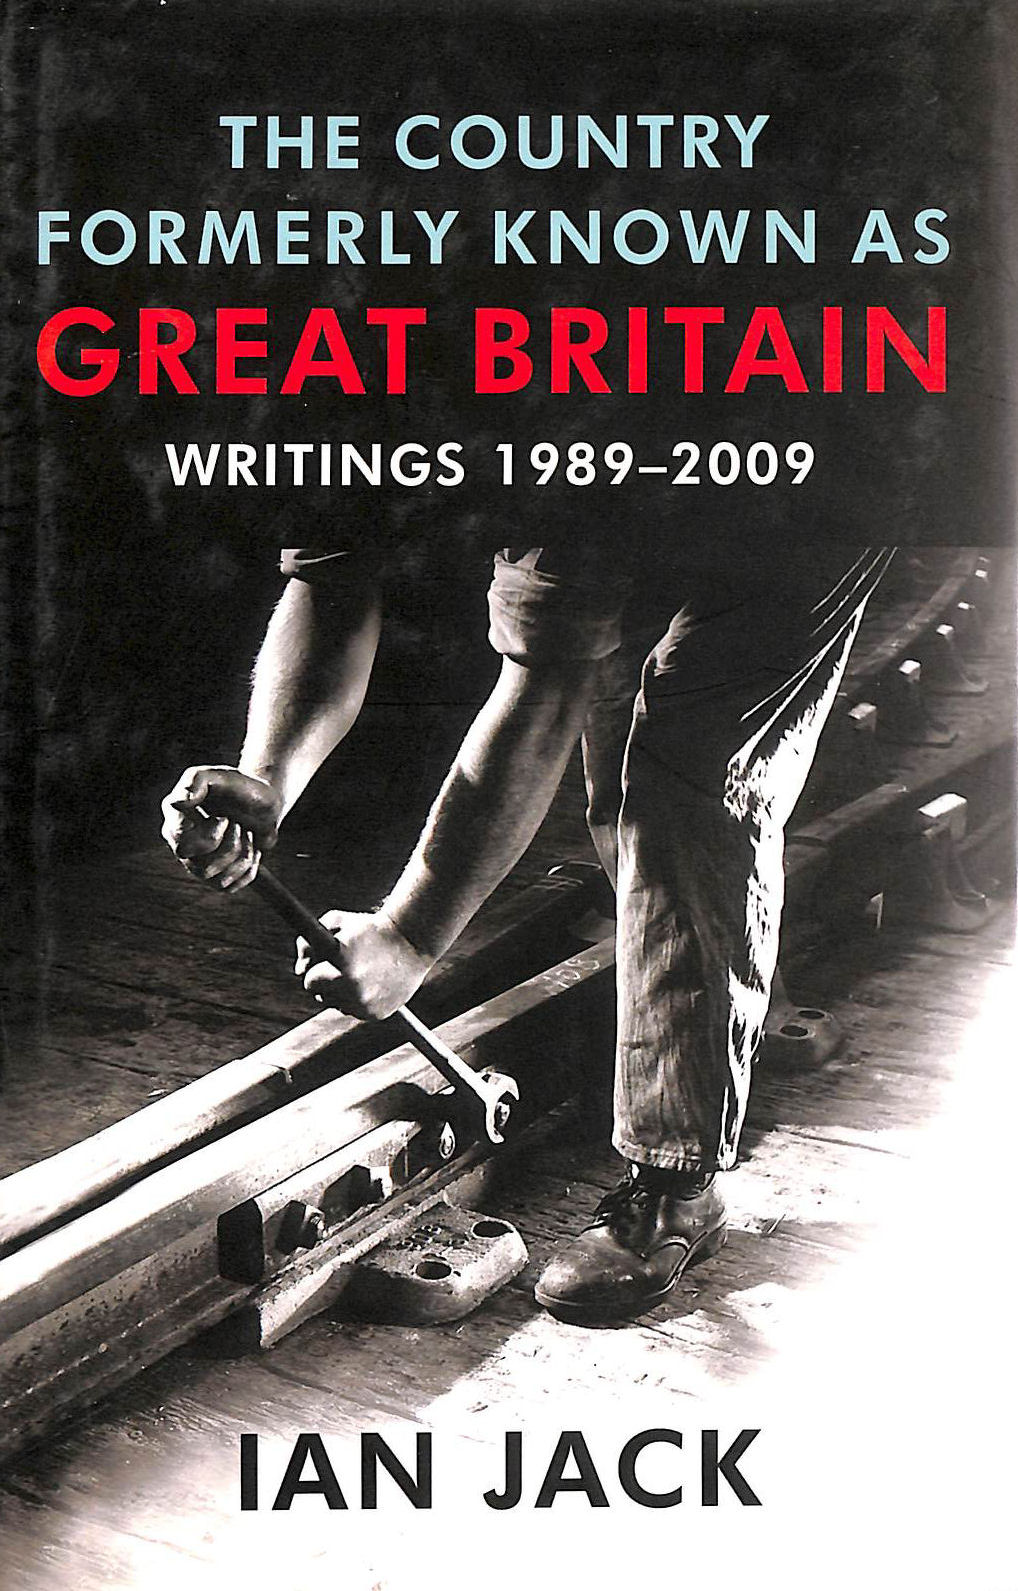 Image for The Country Formerly Known as Great Britain: Writings 1989-2009